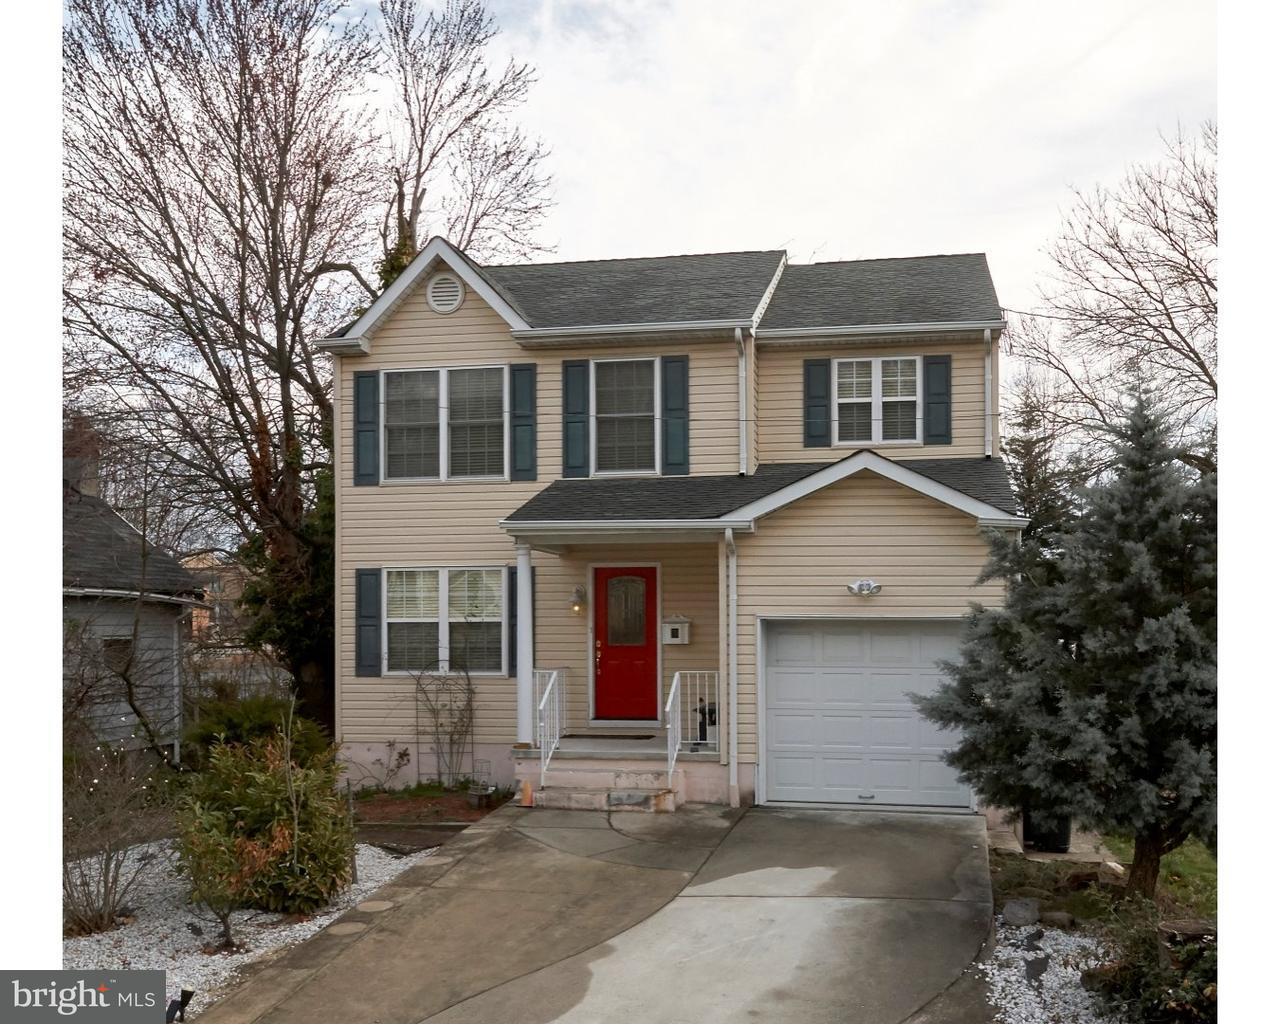 Single Family Home for Sale at 321 SAUNDERS Avenue Bellmawr, New Jersey 08031 United States